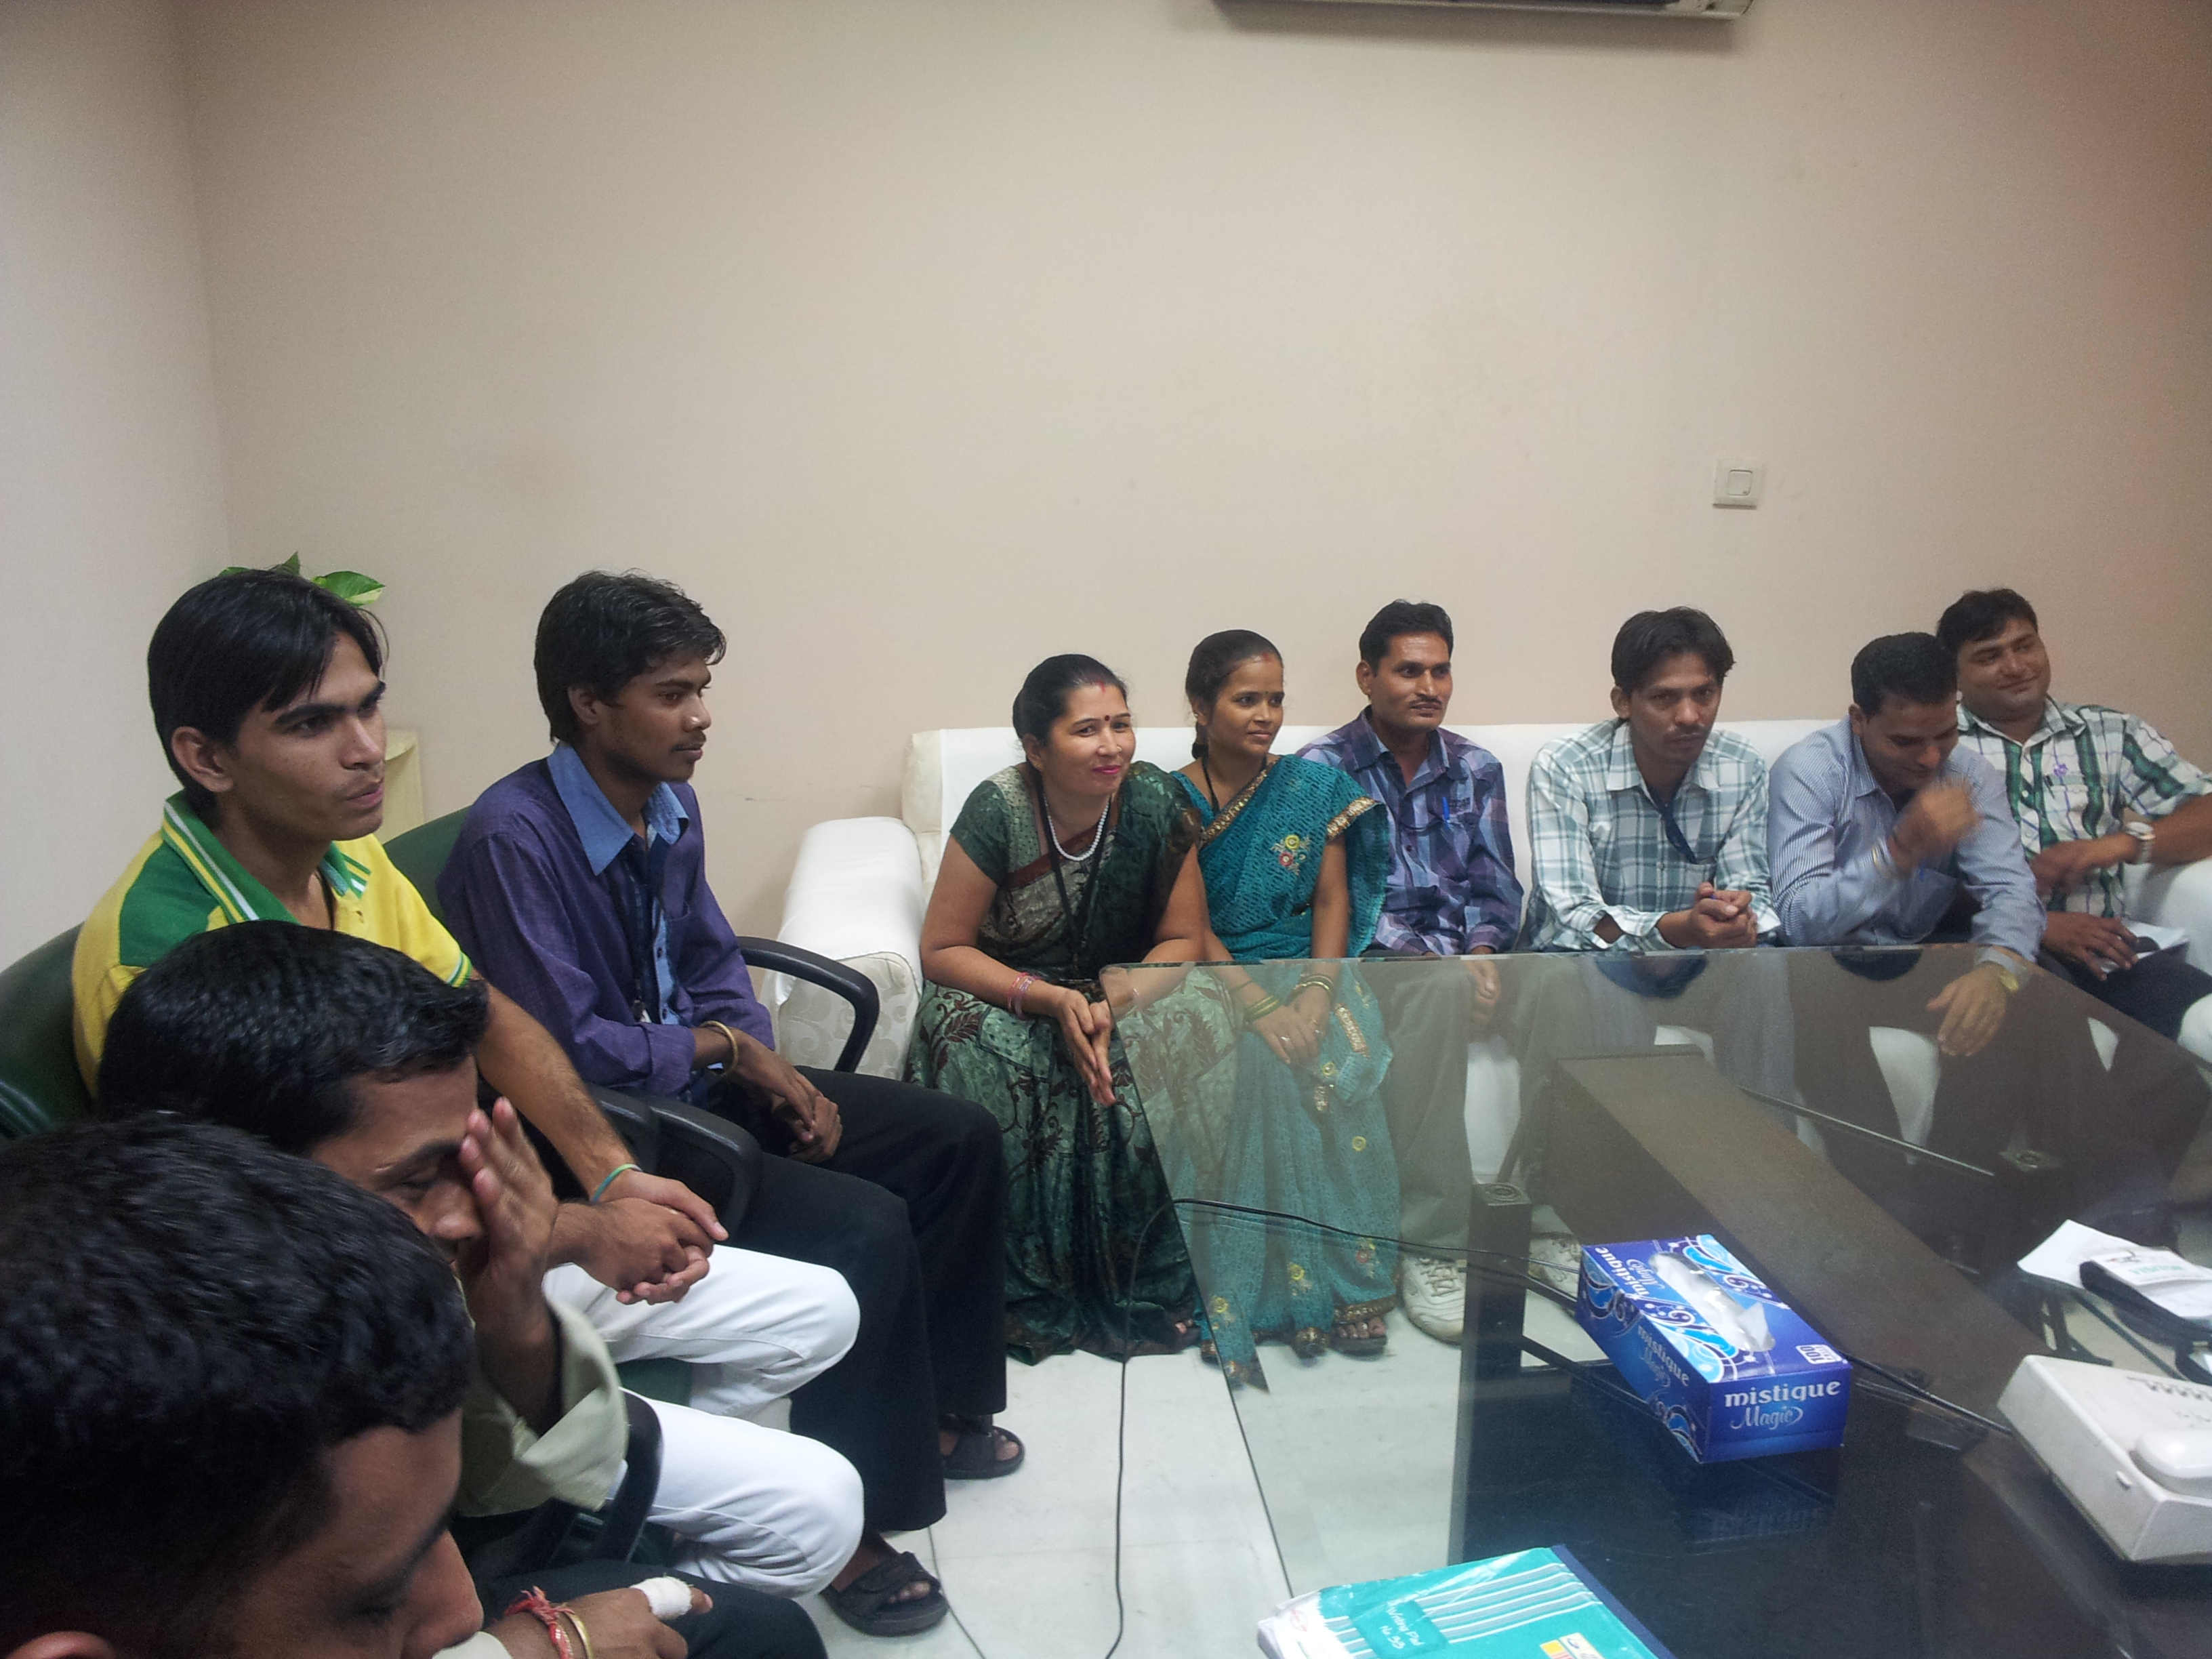 Worker Representatives Assembled in a Conference Room for a Meeting with the Management